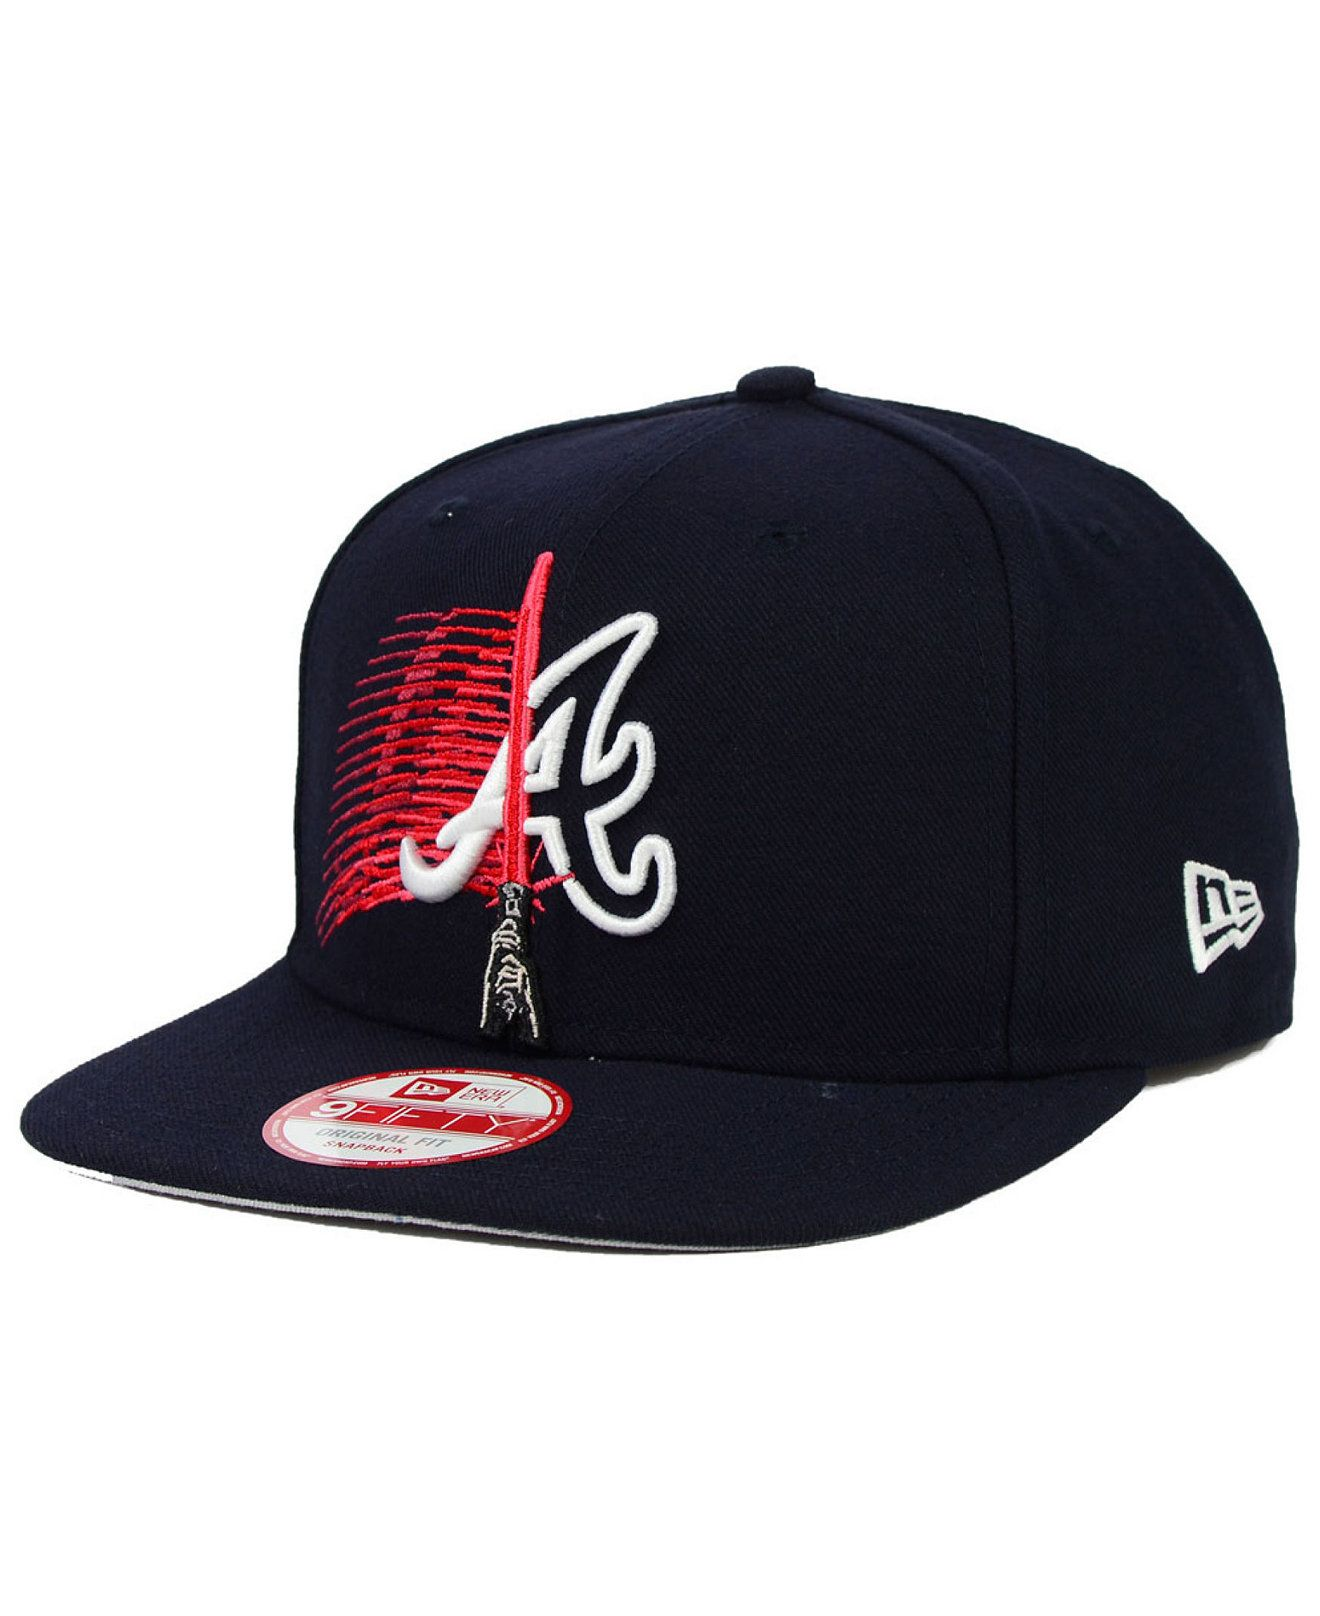 9677ea23 New Era Atlanta Braves Star Wars Logoswipe 9FIFTY Snapback Cap - Sports Fan  Shop By Lids - Men - Macy's